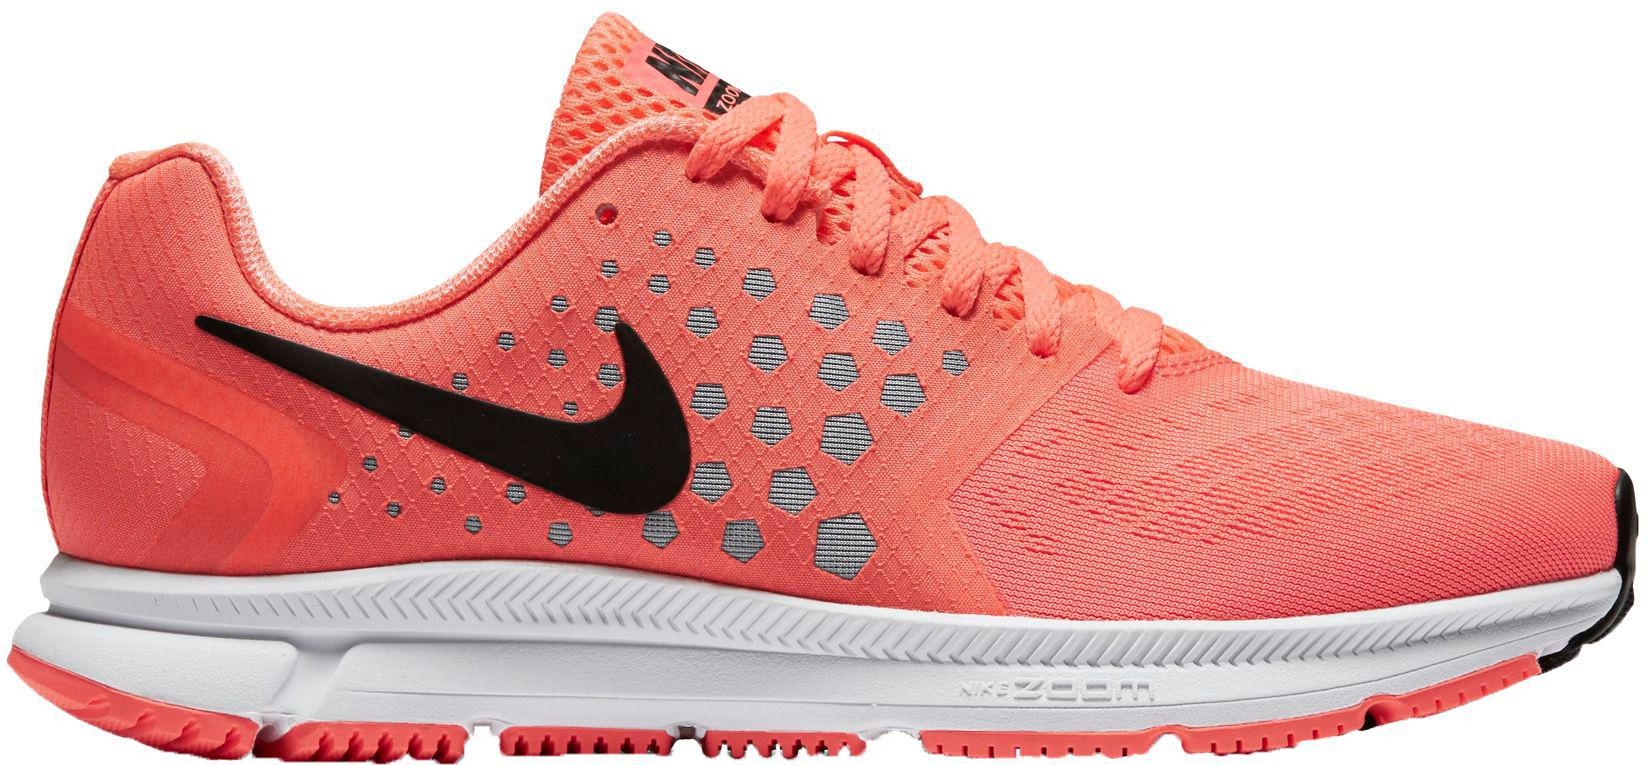 95dc3f89f17 Lyst - Nike Air Zoom Span Shield Running Shoes